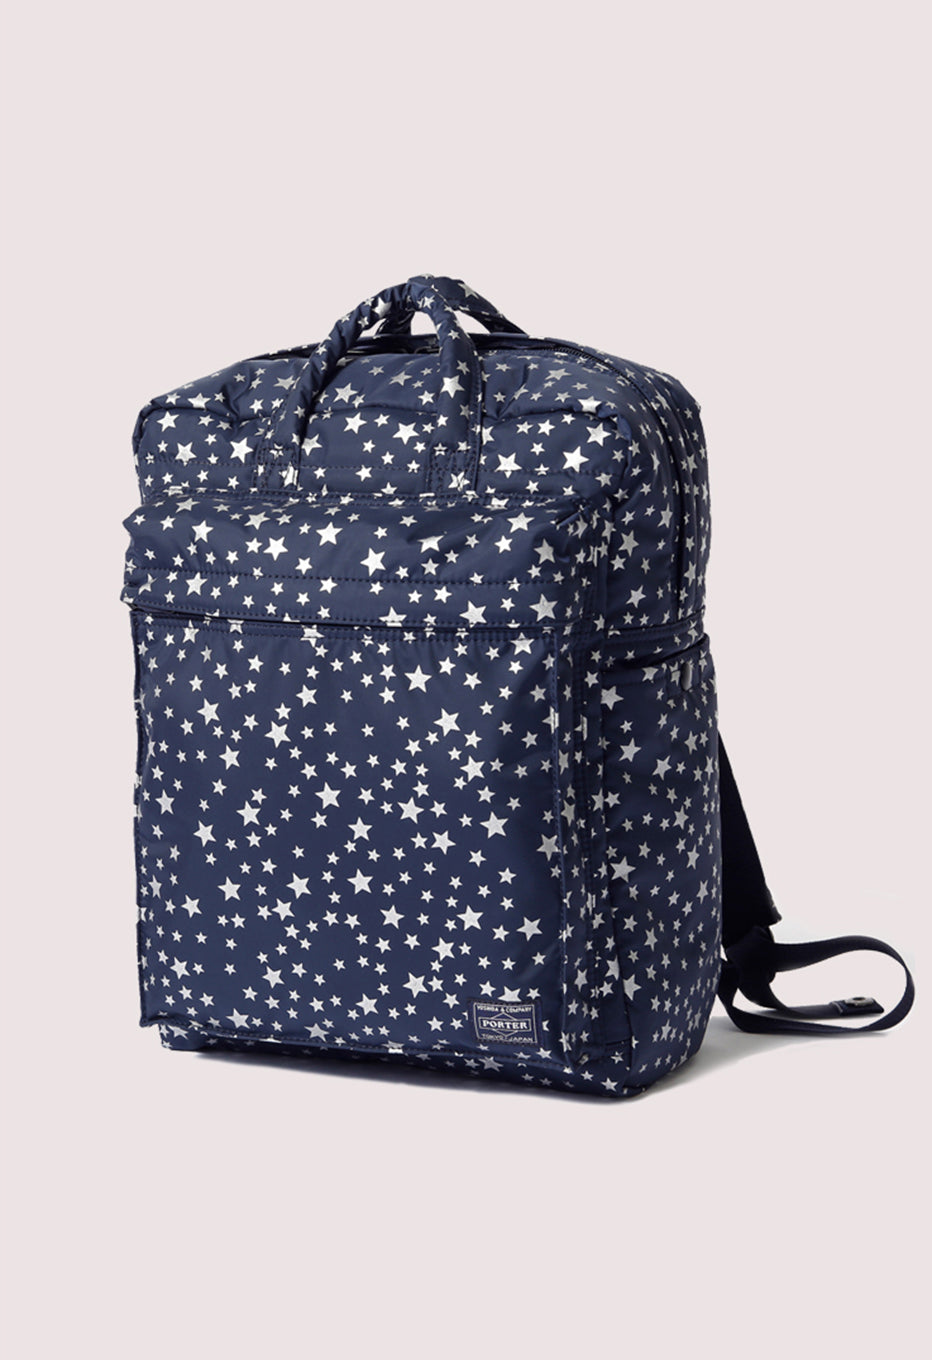 HEAD PORTER Luggage SS19